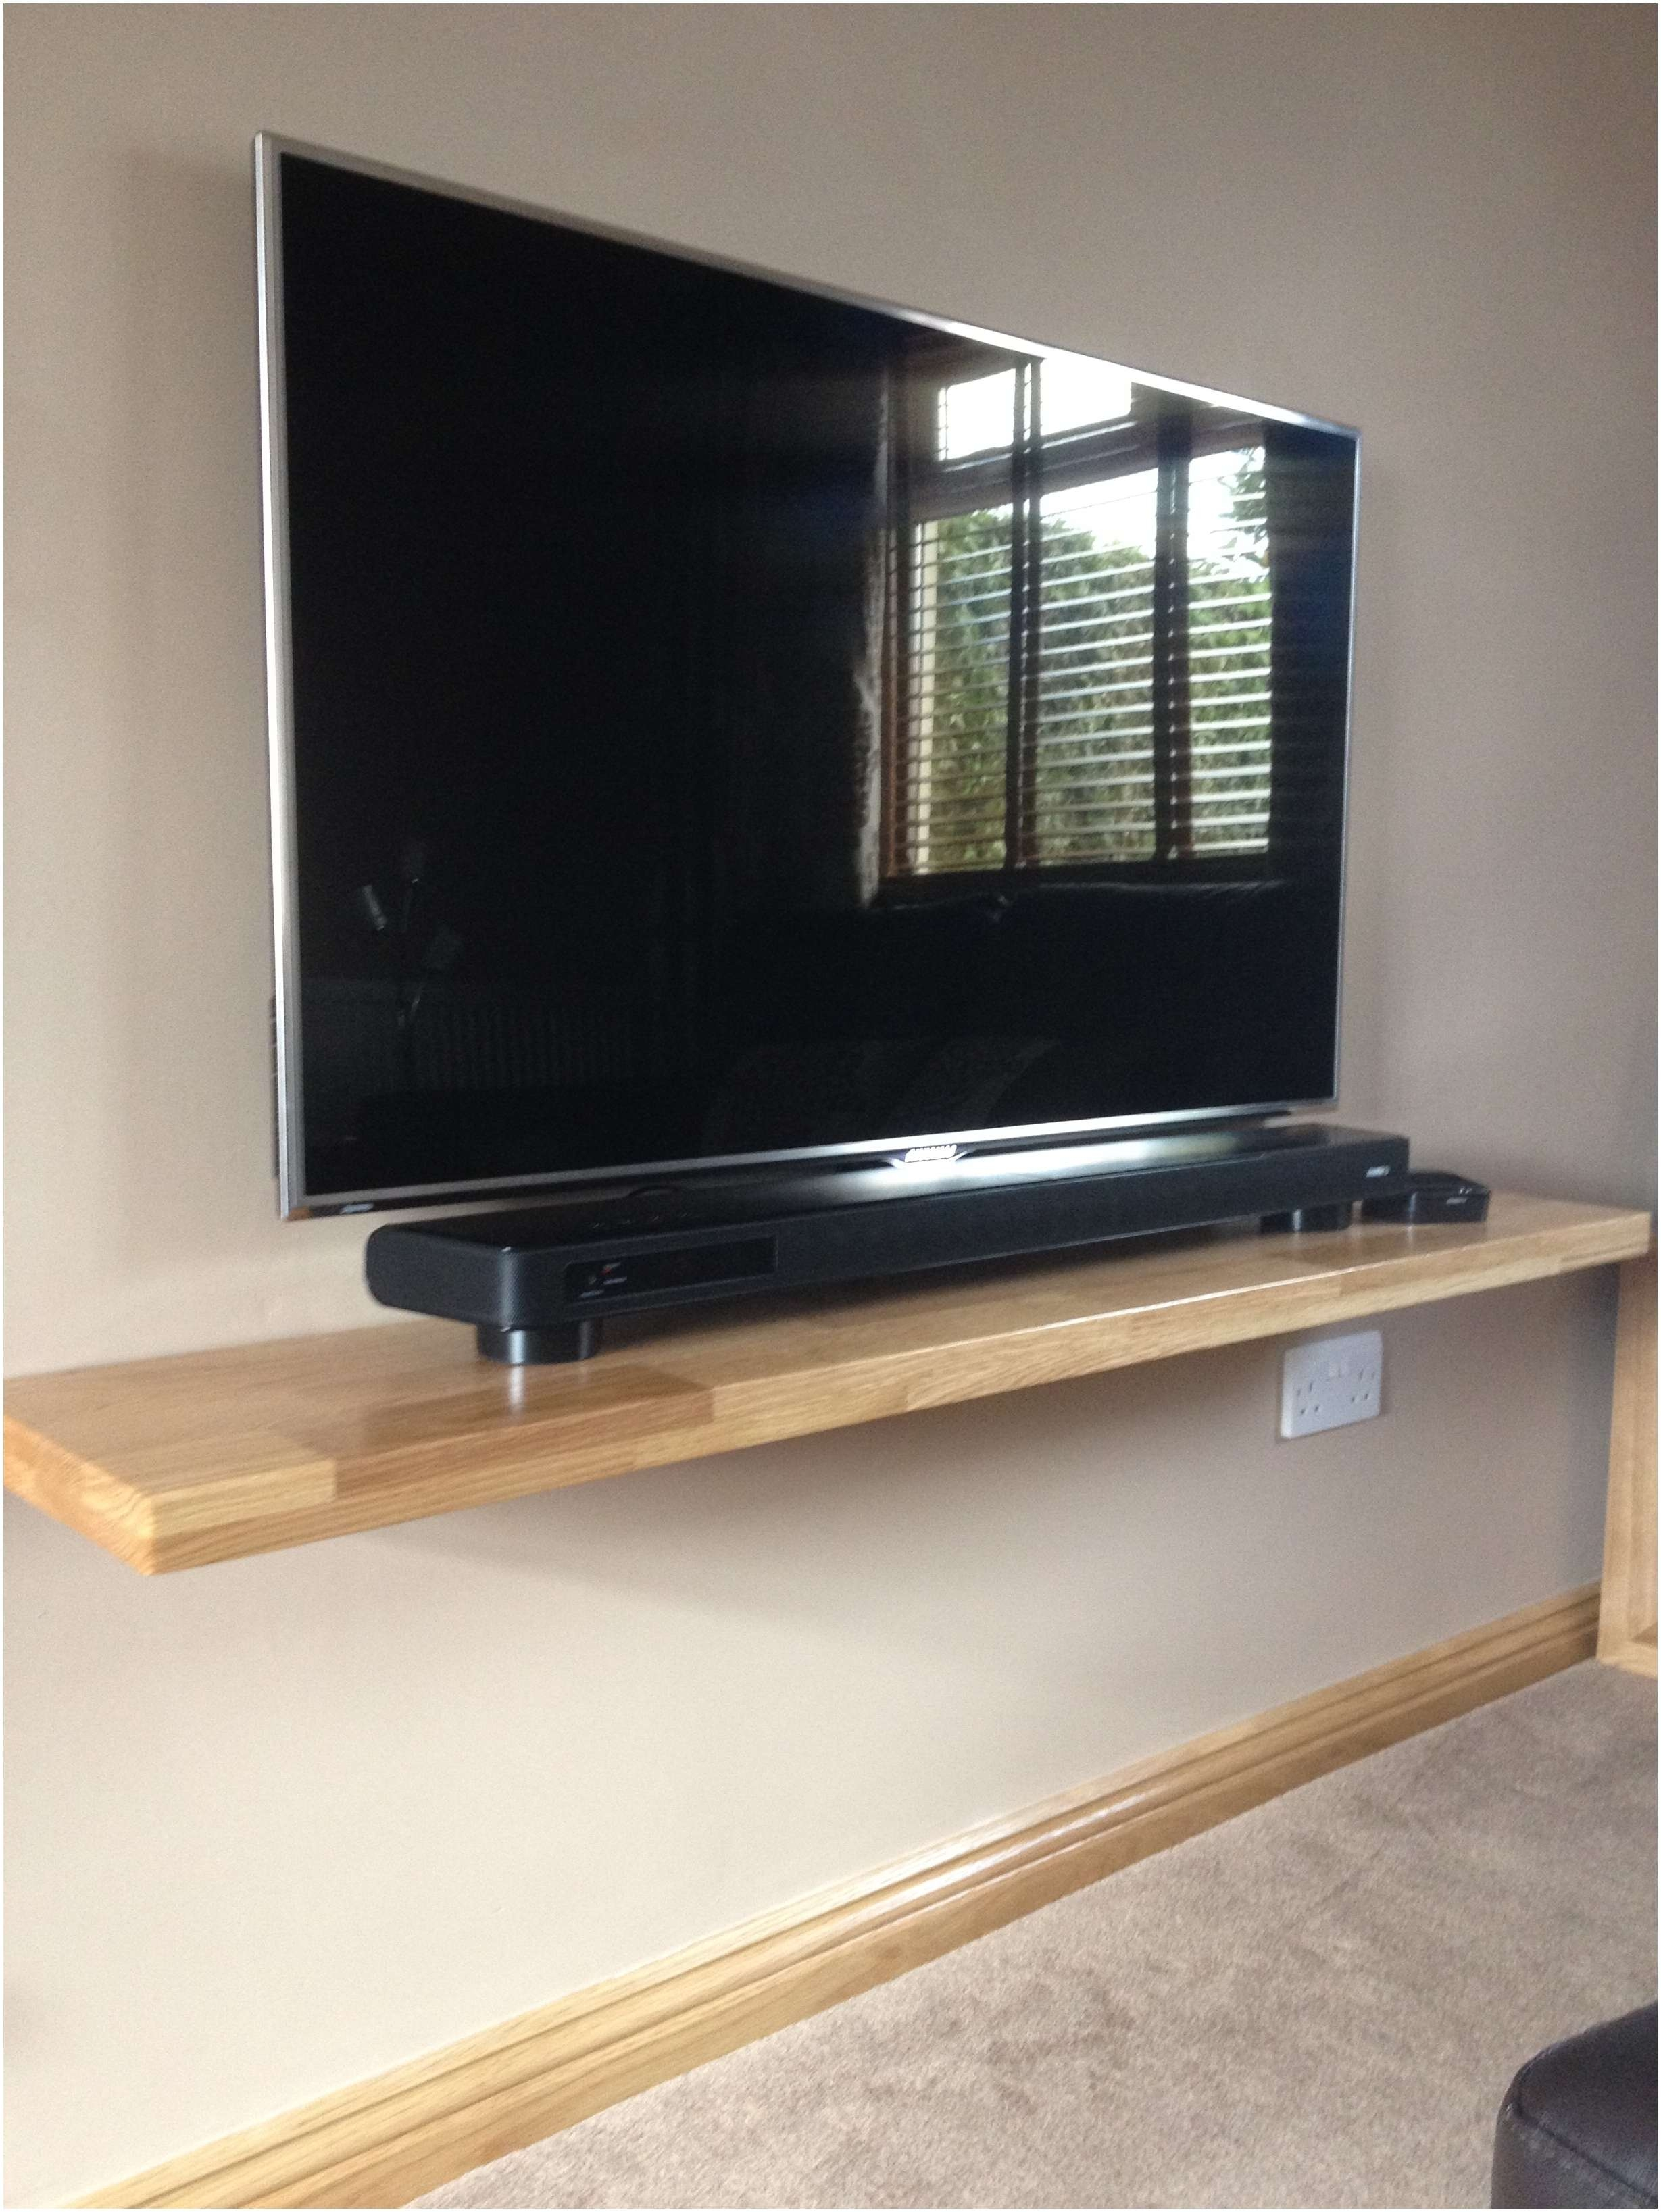 Shelves : Awesome Floating Entertainment Wall Shelf Vcr Under Tv With Regard To Under Tv Cabinets (View 11 of 20)